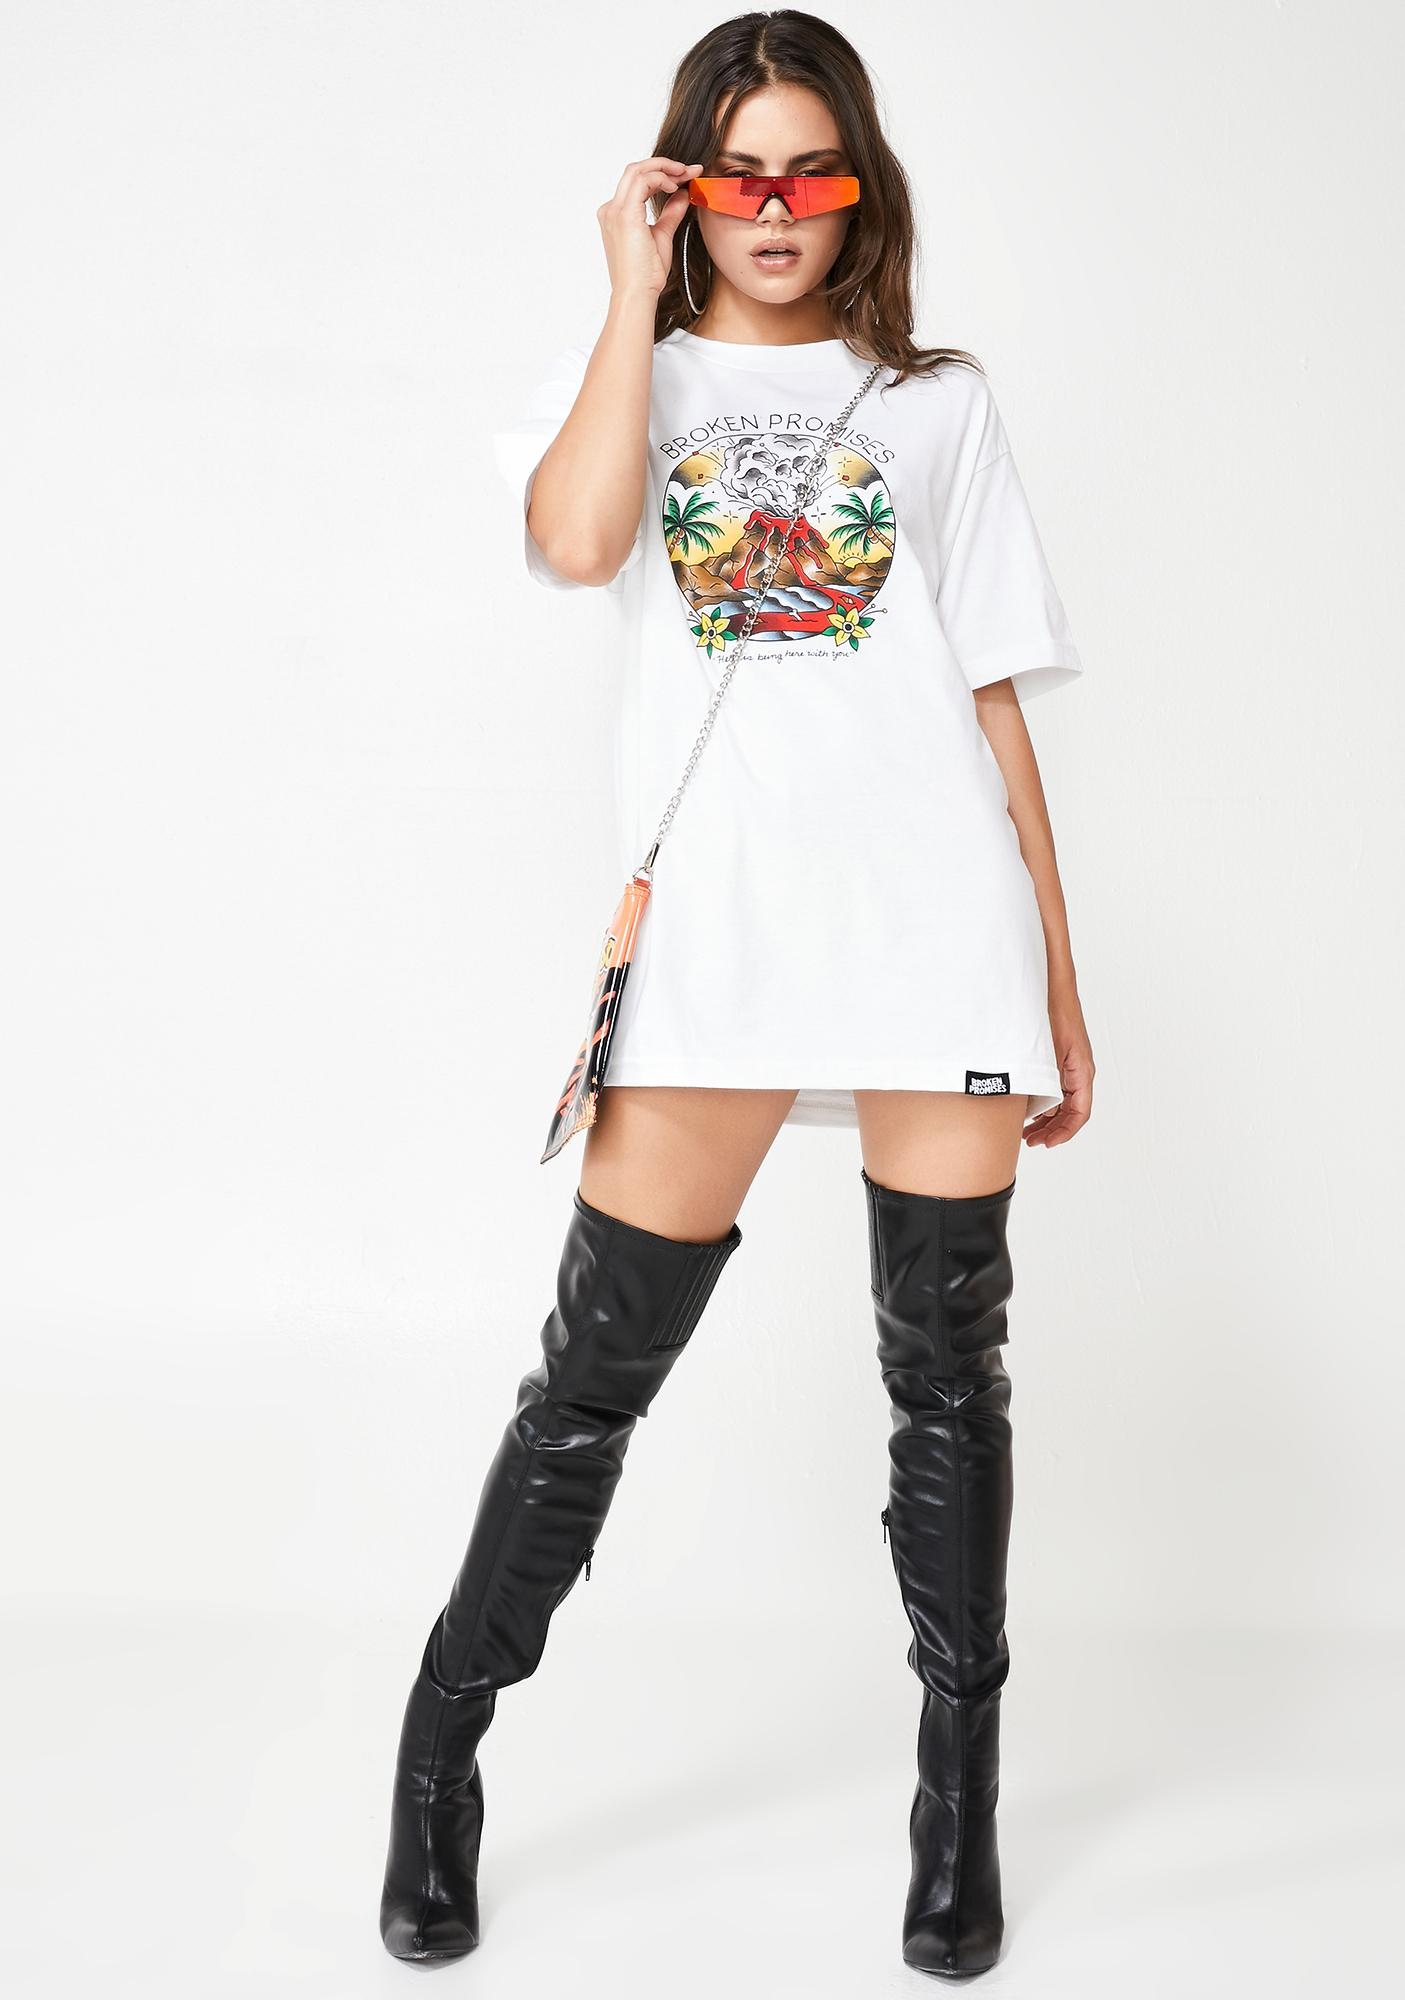 BROKEN PROMISES CO Here With You Graphic Tee